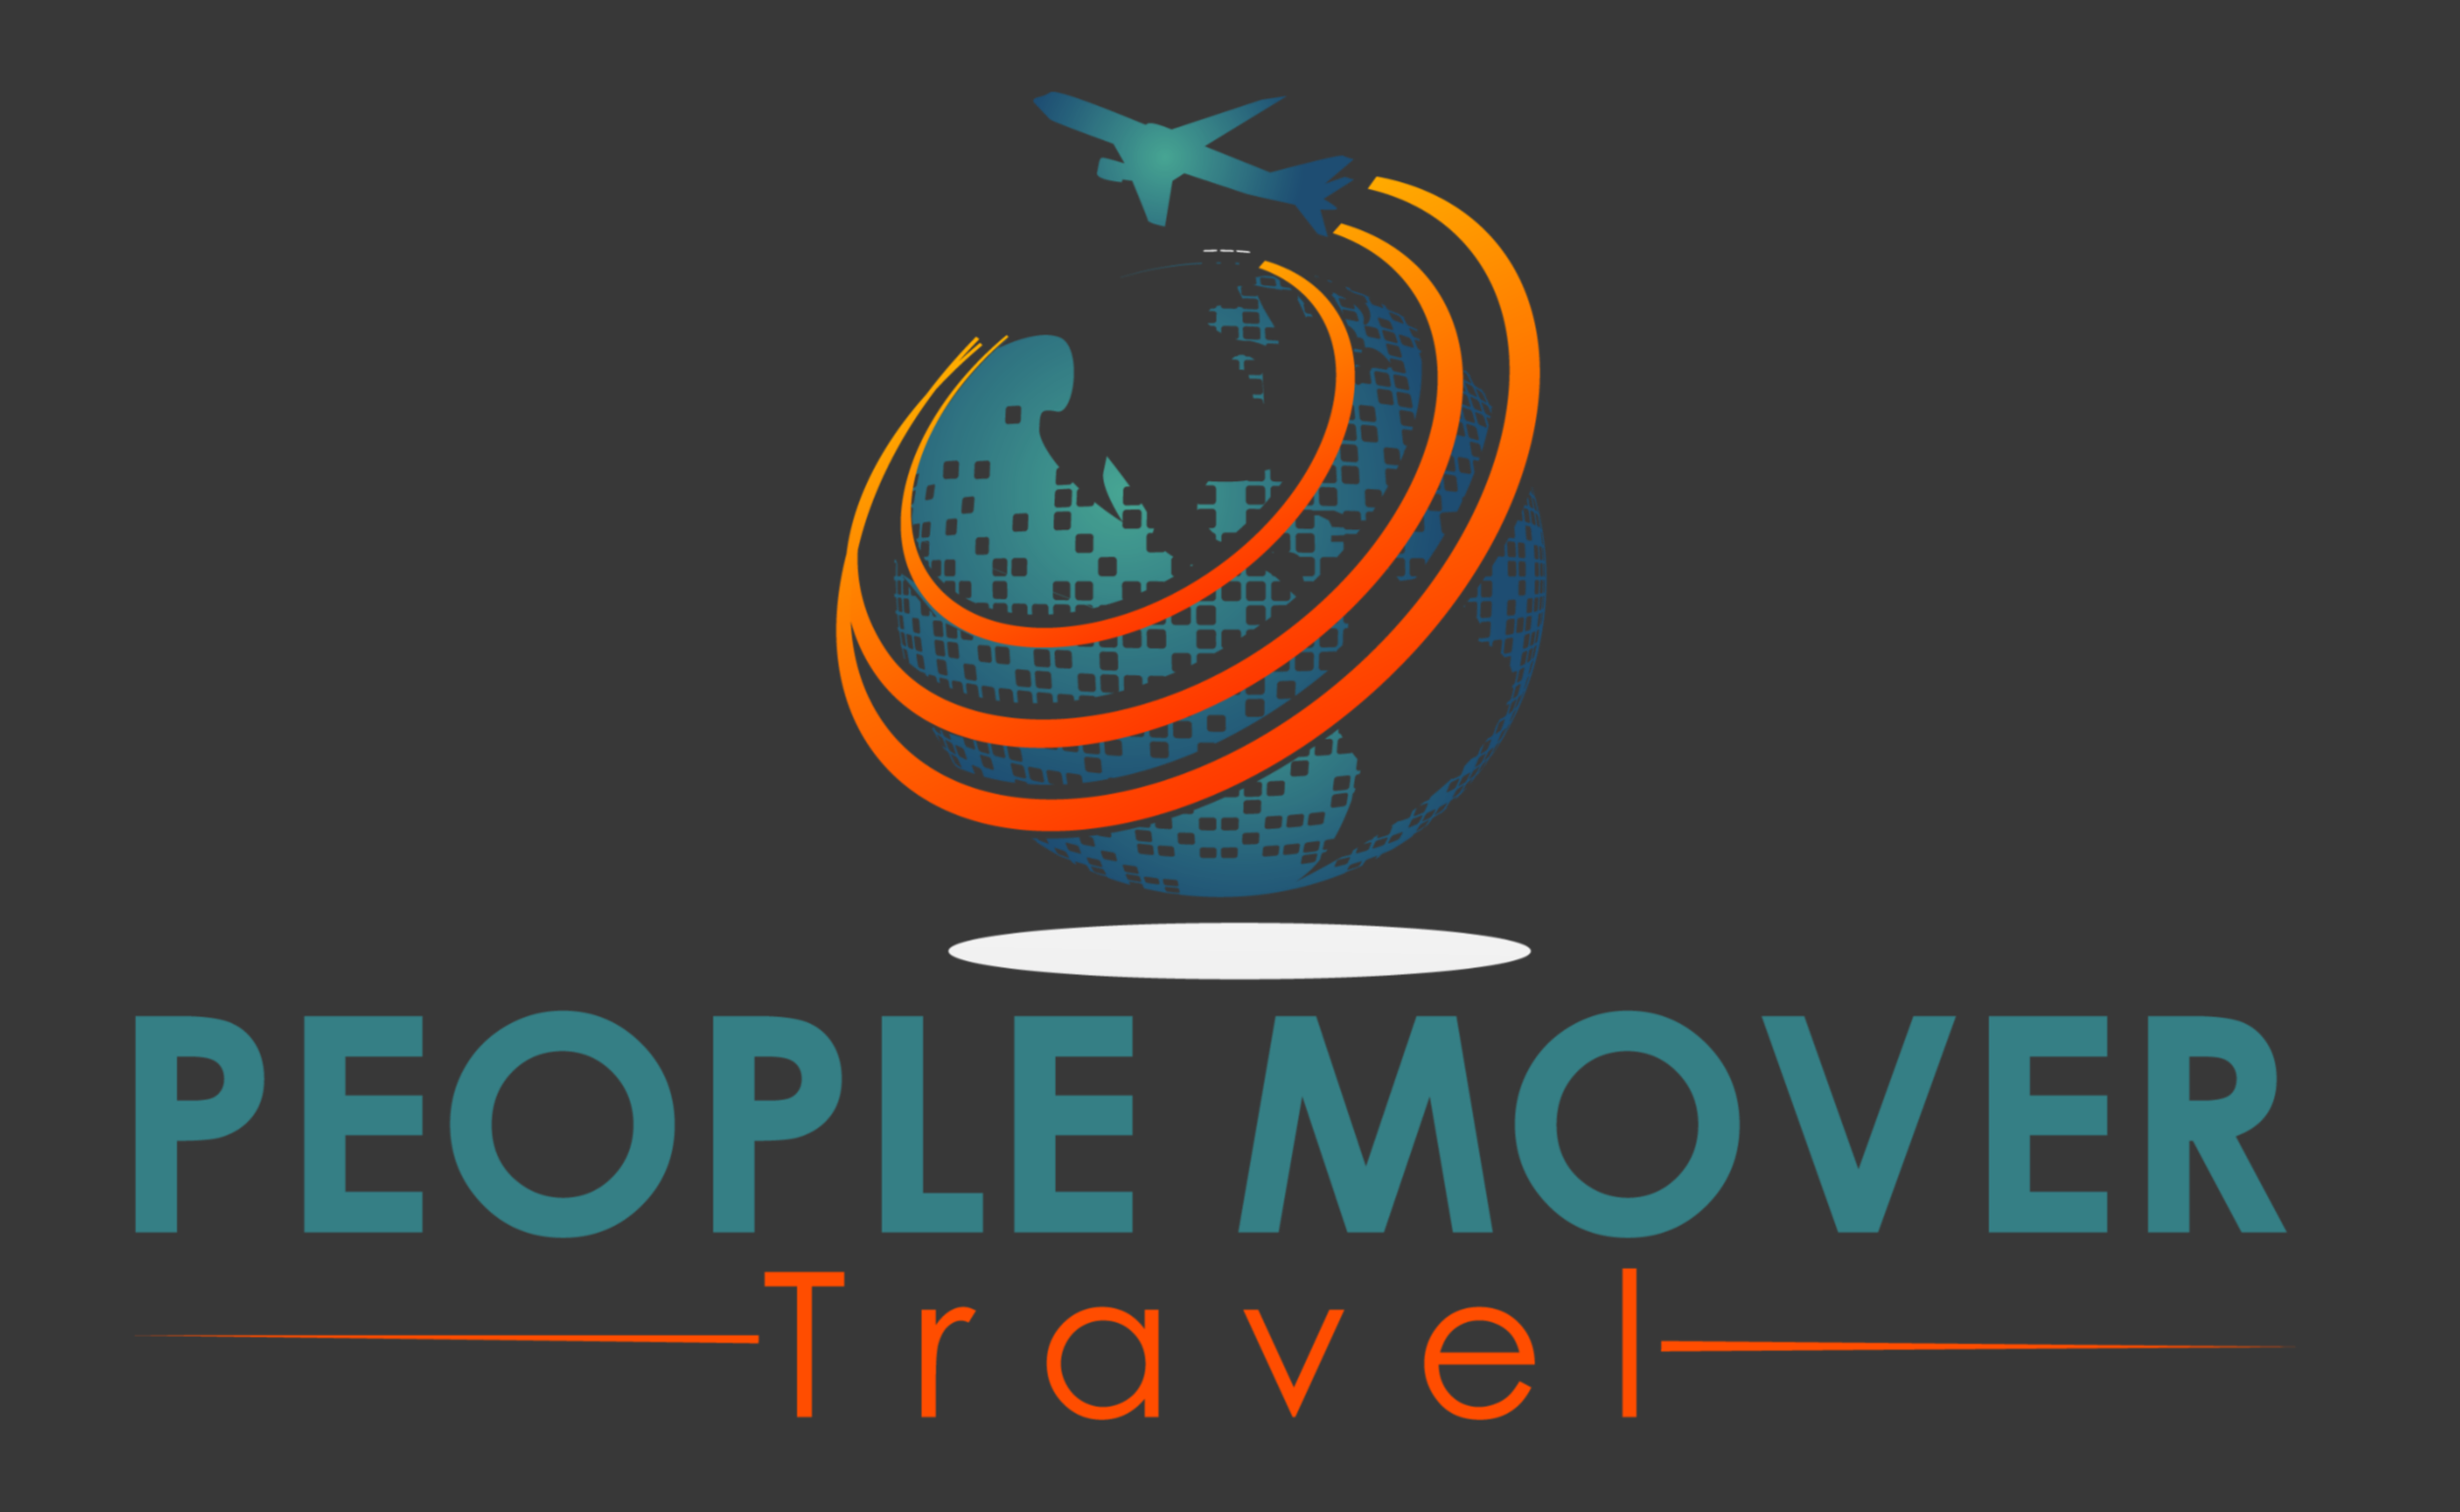 People Mover Travel [Converted] (3).png